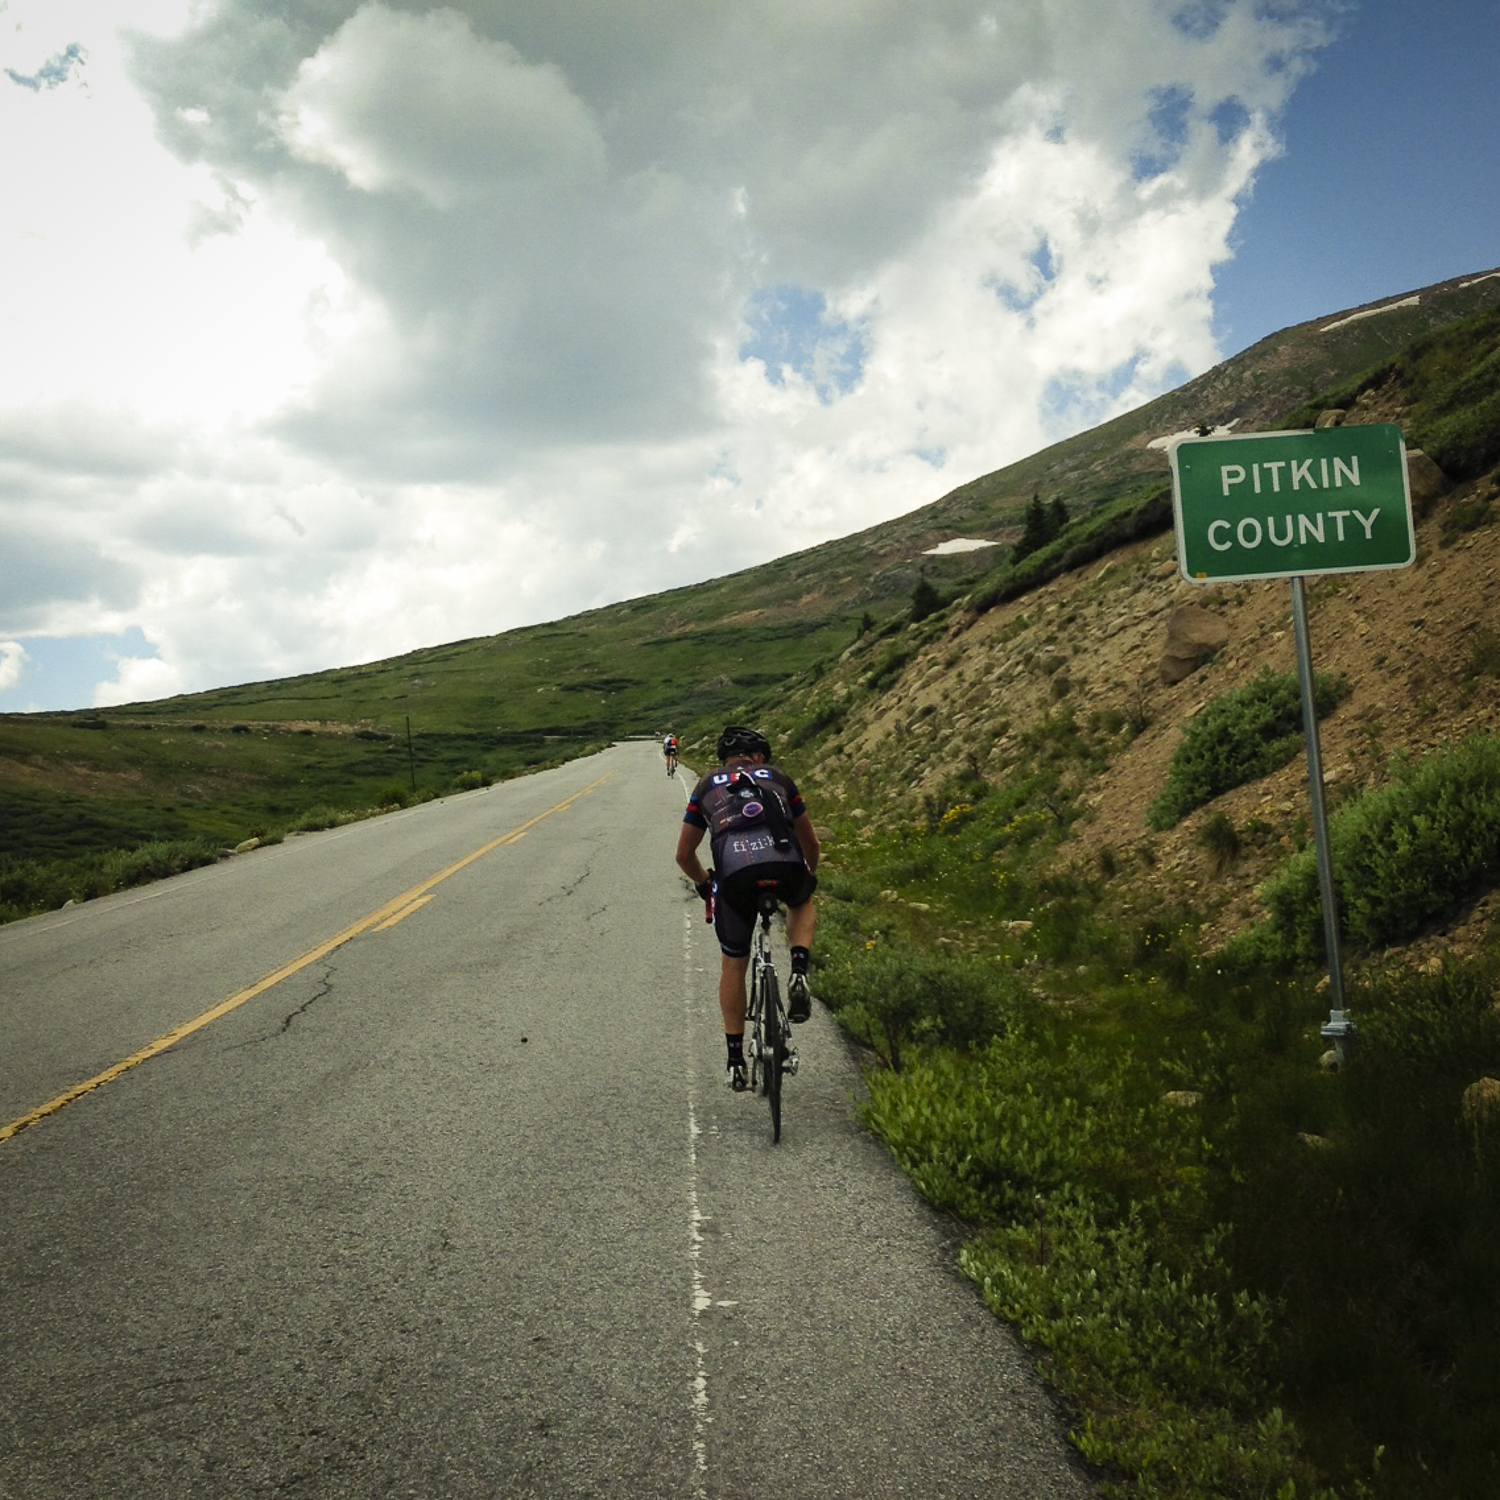 Into Pitkin County, and a 20 mile descent into Aspen / Snowmass. Then straight to the liquor store.